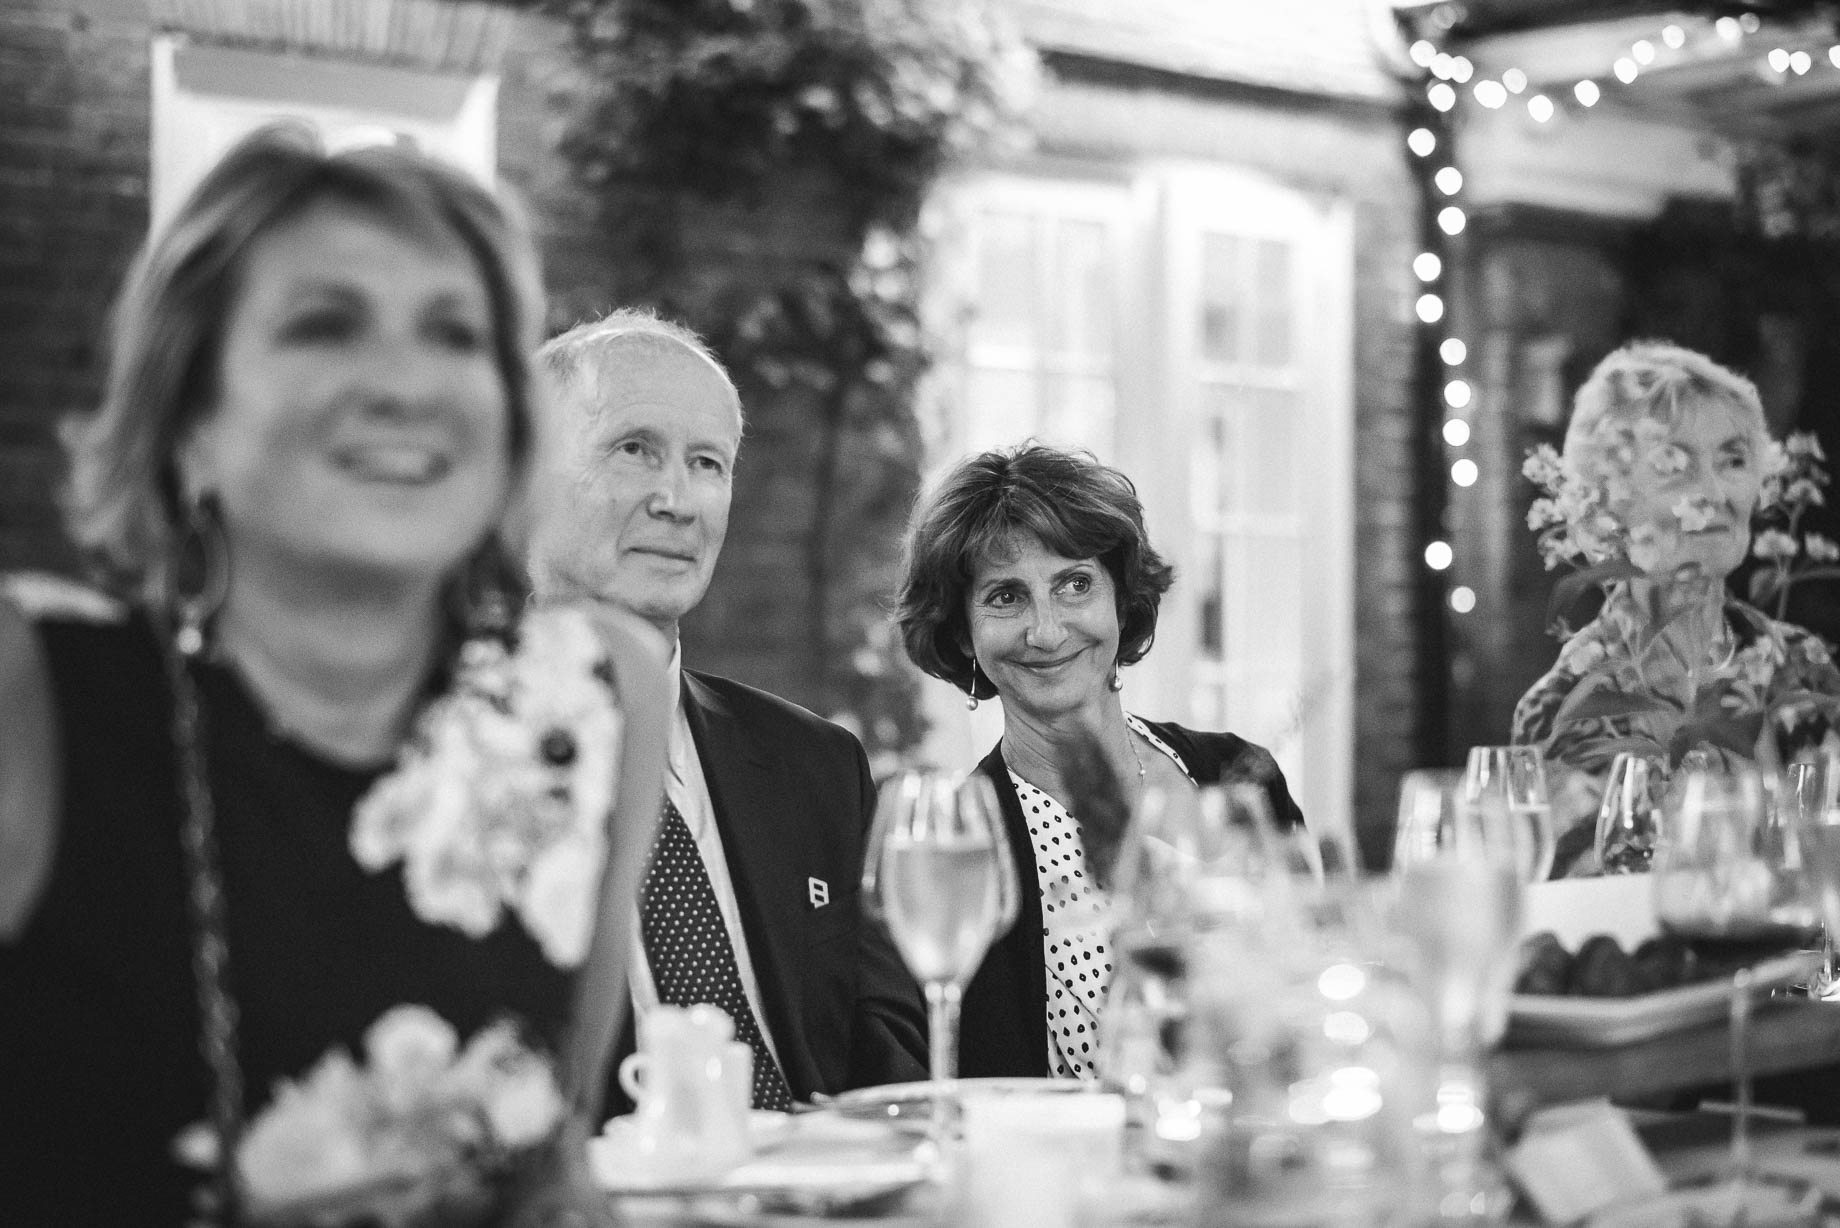 London wedding photography - Claire and JW - Guy Collier Photography (126 of 153)